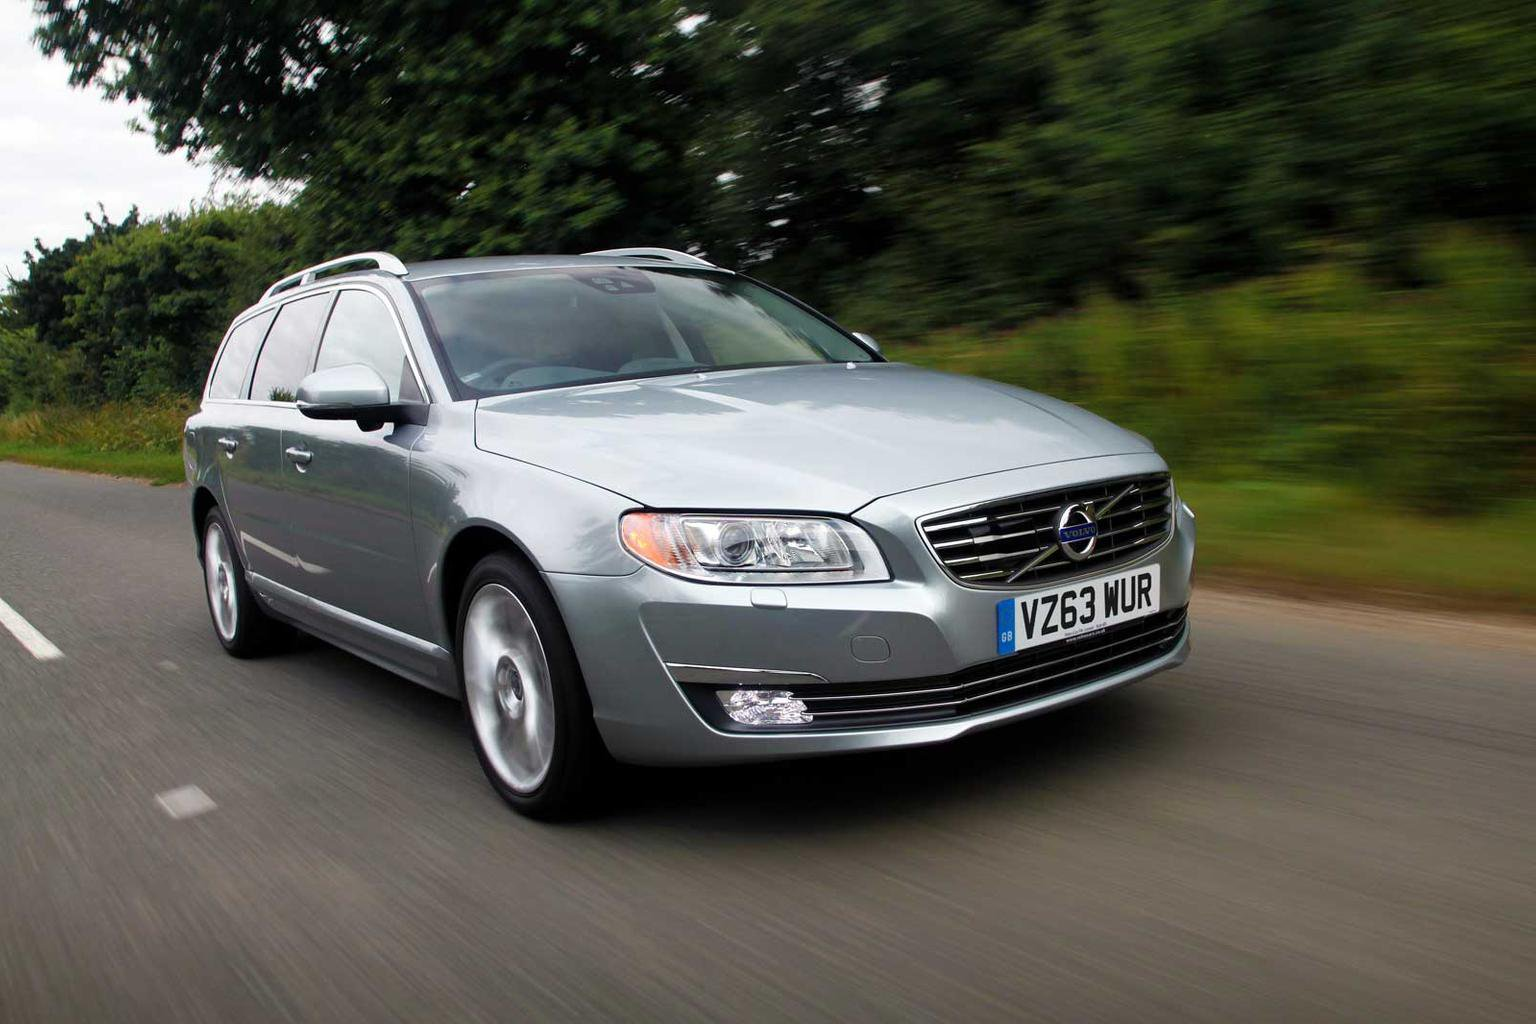 2014 Volvo V70 D4 Geartronic review